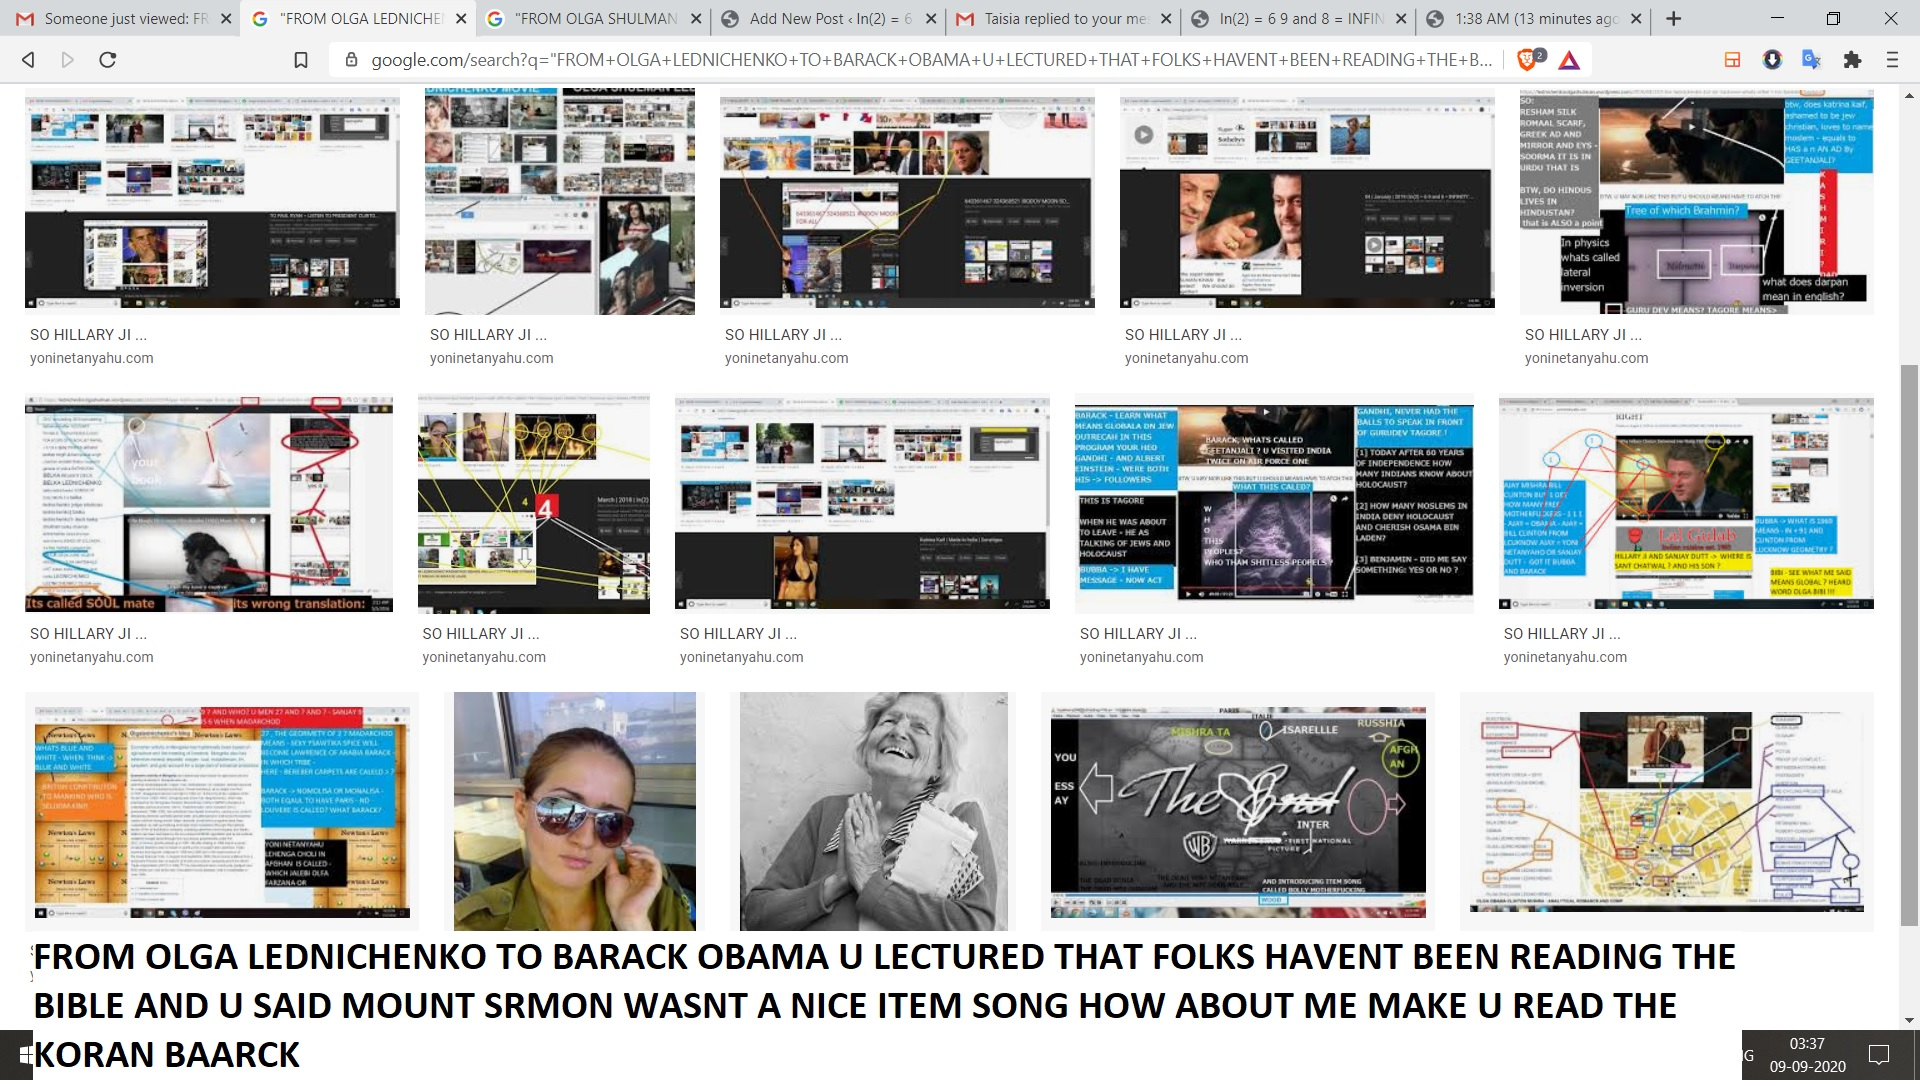 FROM OLGA LEDNICHENKO TO BARACK OBAMA U LECTURED THAT FOLKS HAVENT BEEN READING THE BIBLE AND U SAID MOUNT SRMON WASNT A NICE ITEM SONG HOW ABOUT ME MAKE U READ THE KORAN BAARCK